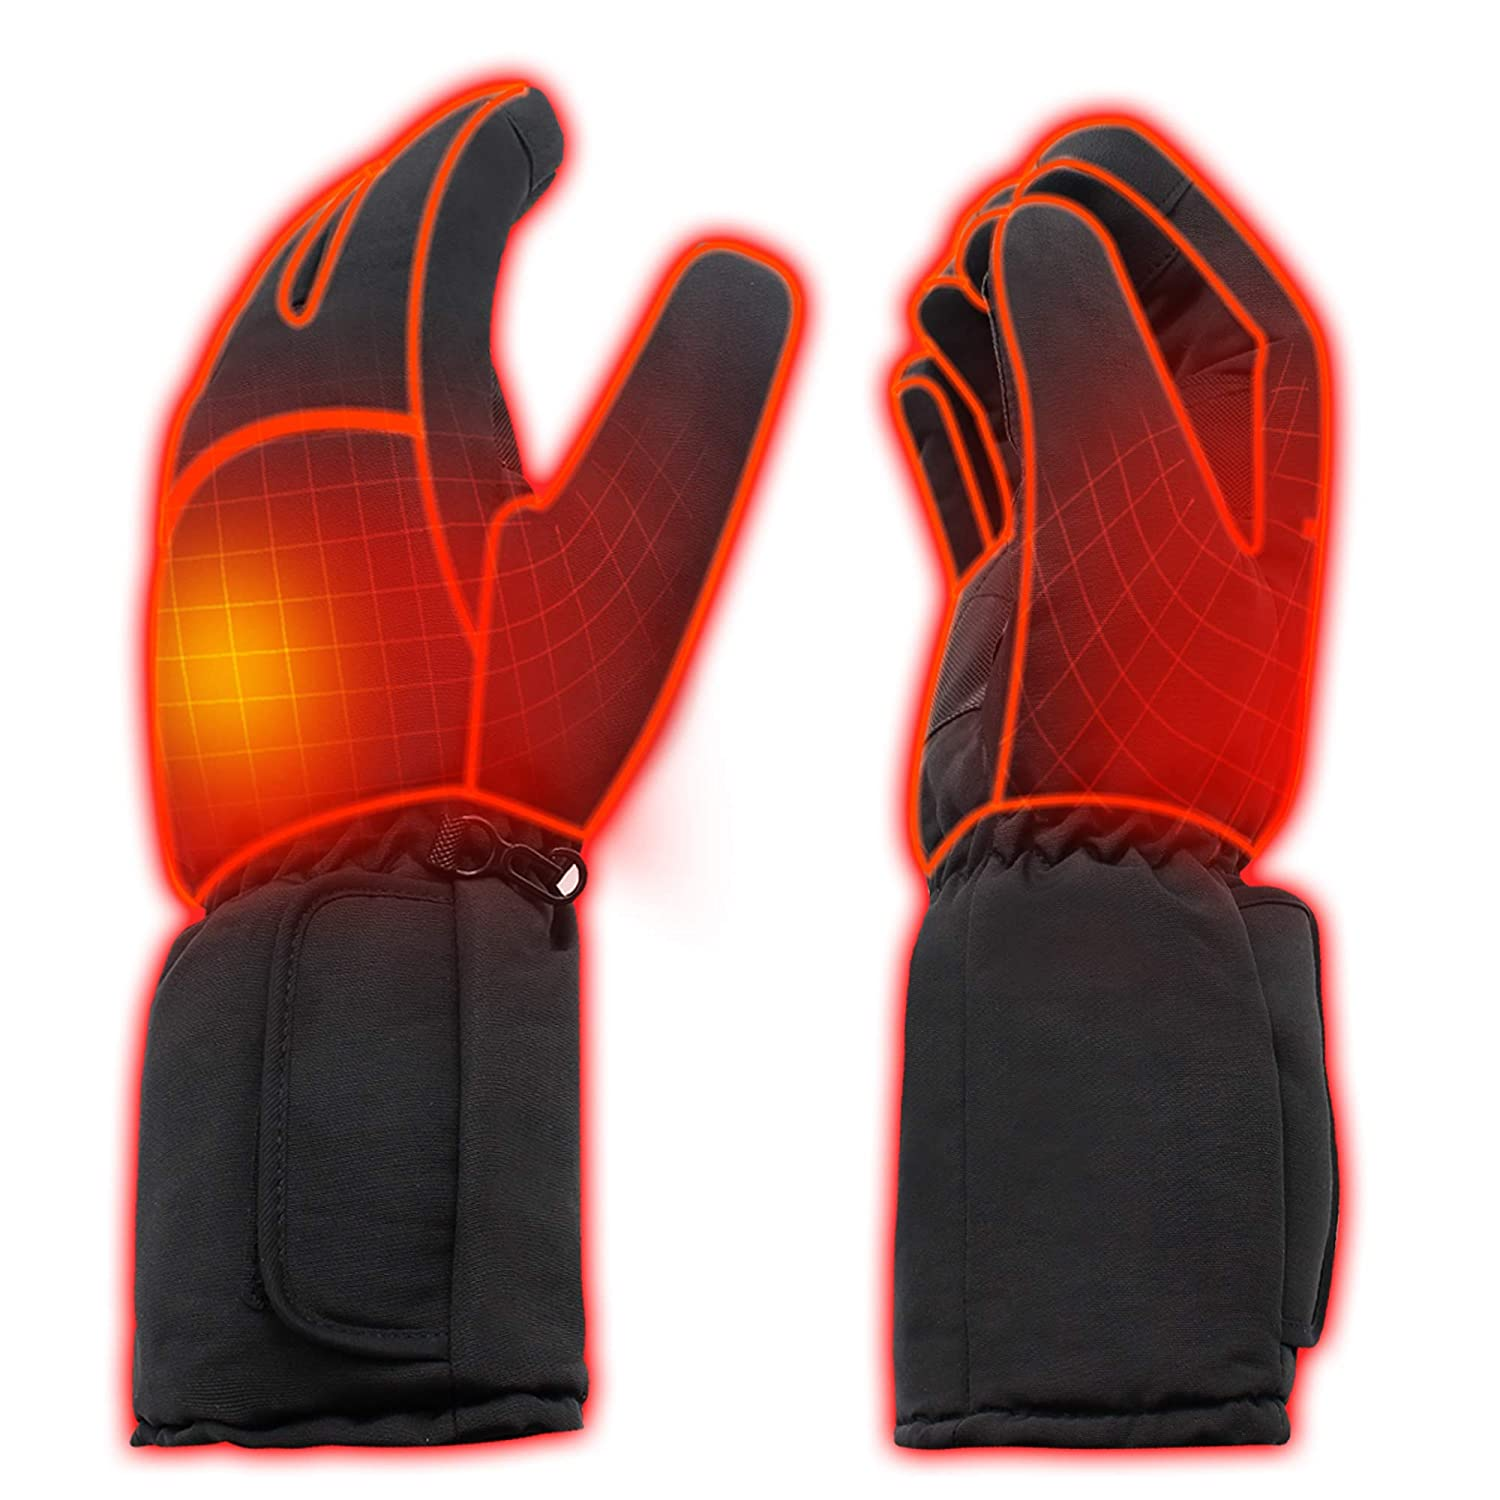 Rabbitroom Mens Winter Electric Heated Gloves AA Battery Power Heating Gloves Warm Thermal Gloves Hiking Skiing Hunting Hand Warmer Heated Arthritis gloves Size large